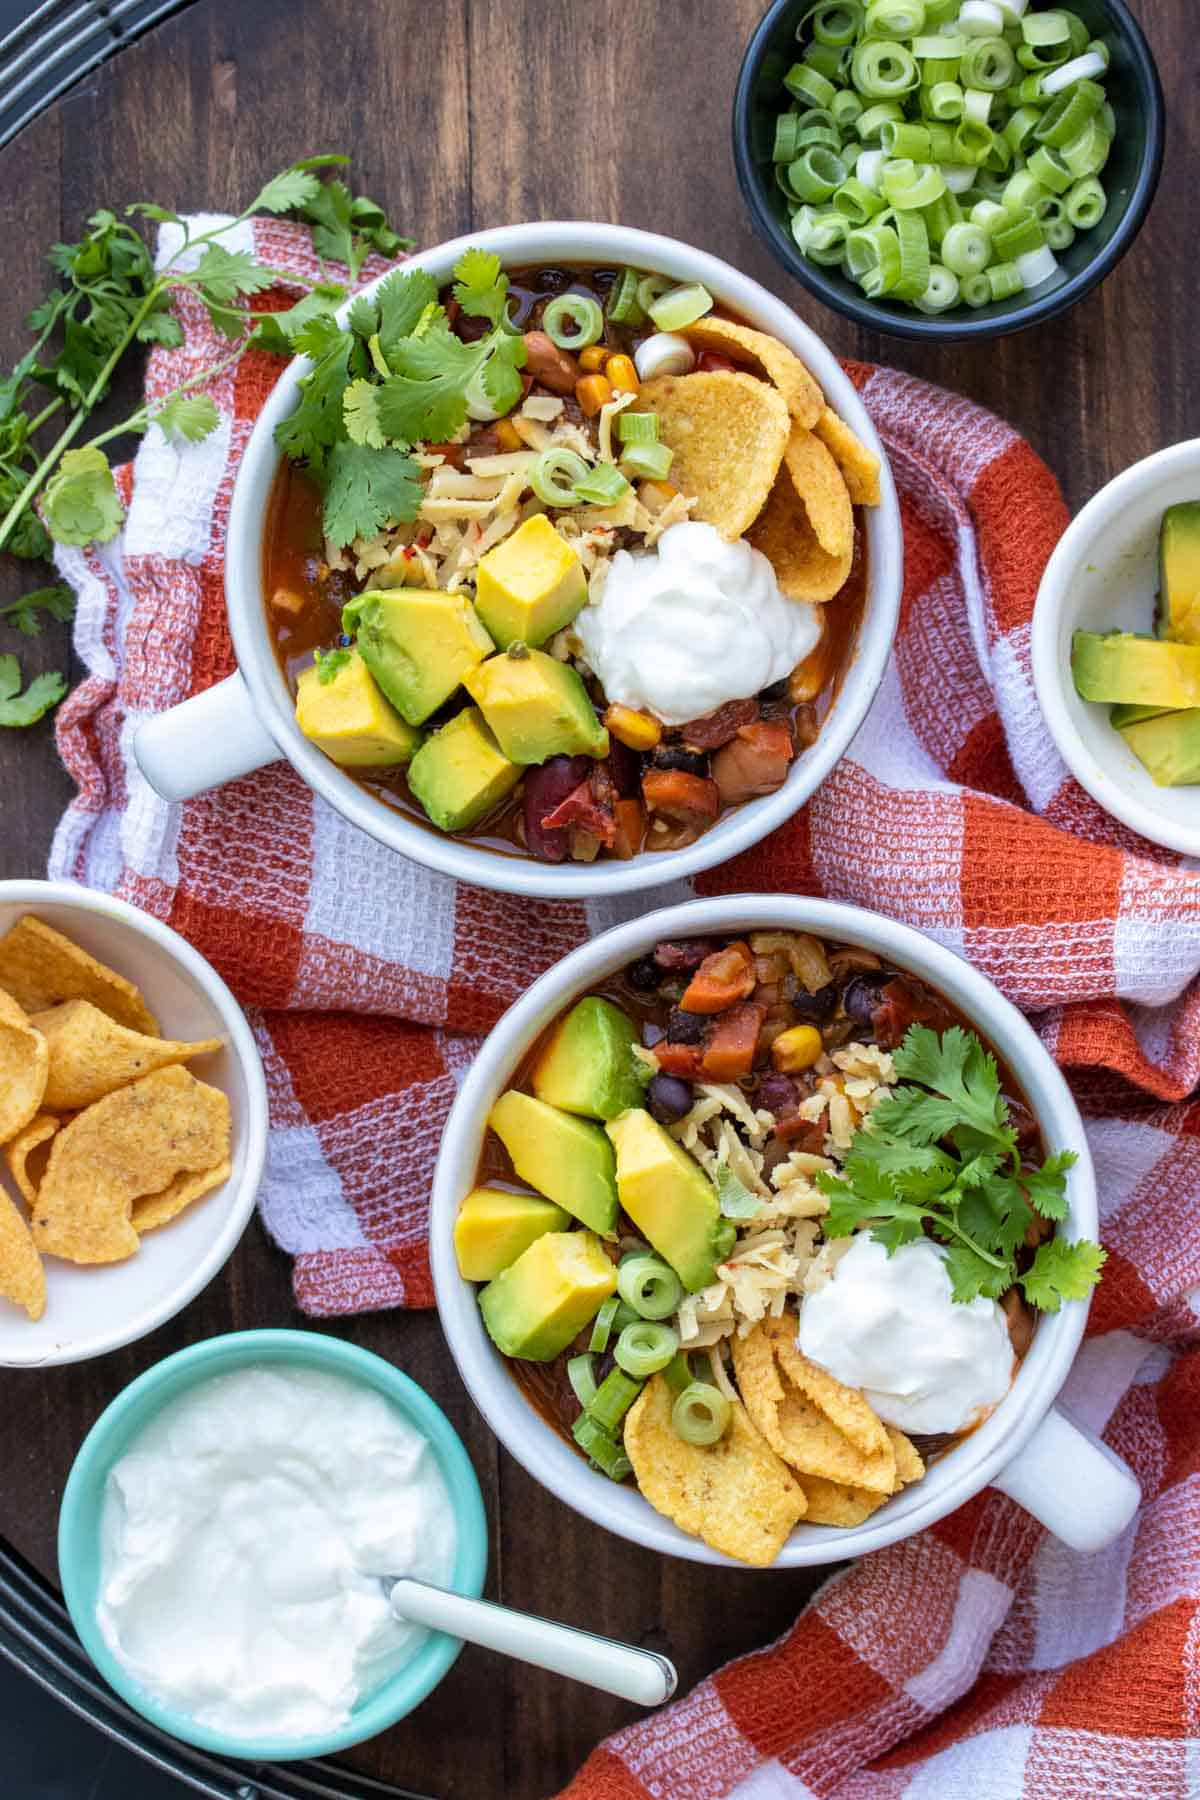 Two soup bowls filled with veggie chili surrounded by ingredients